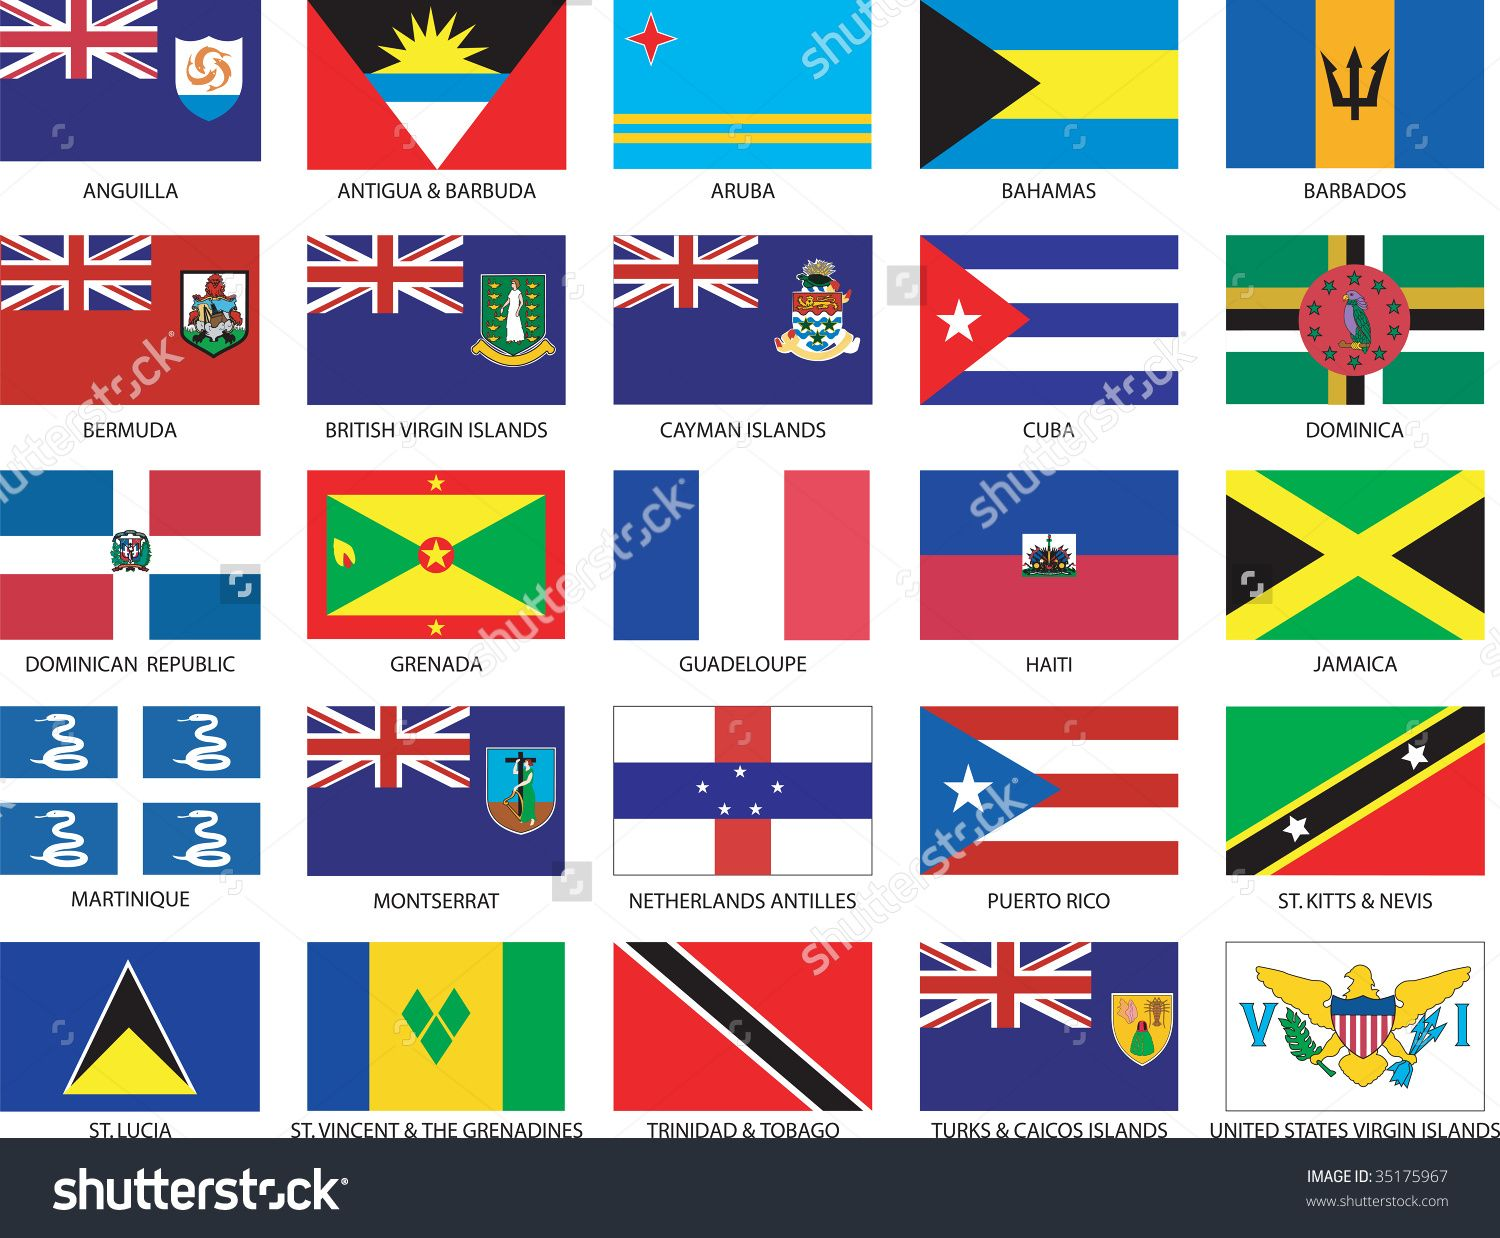 Caribbean Countries Flags Caribbean Flags St Lucia Caribbean